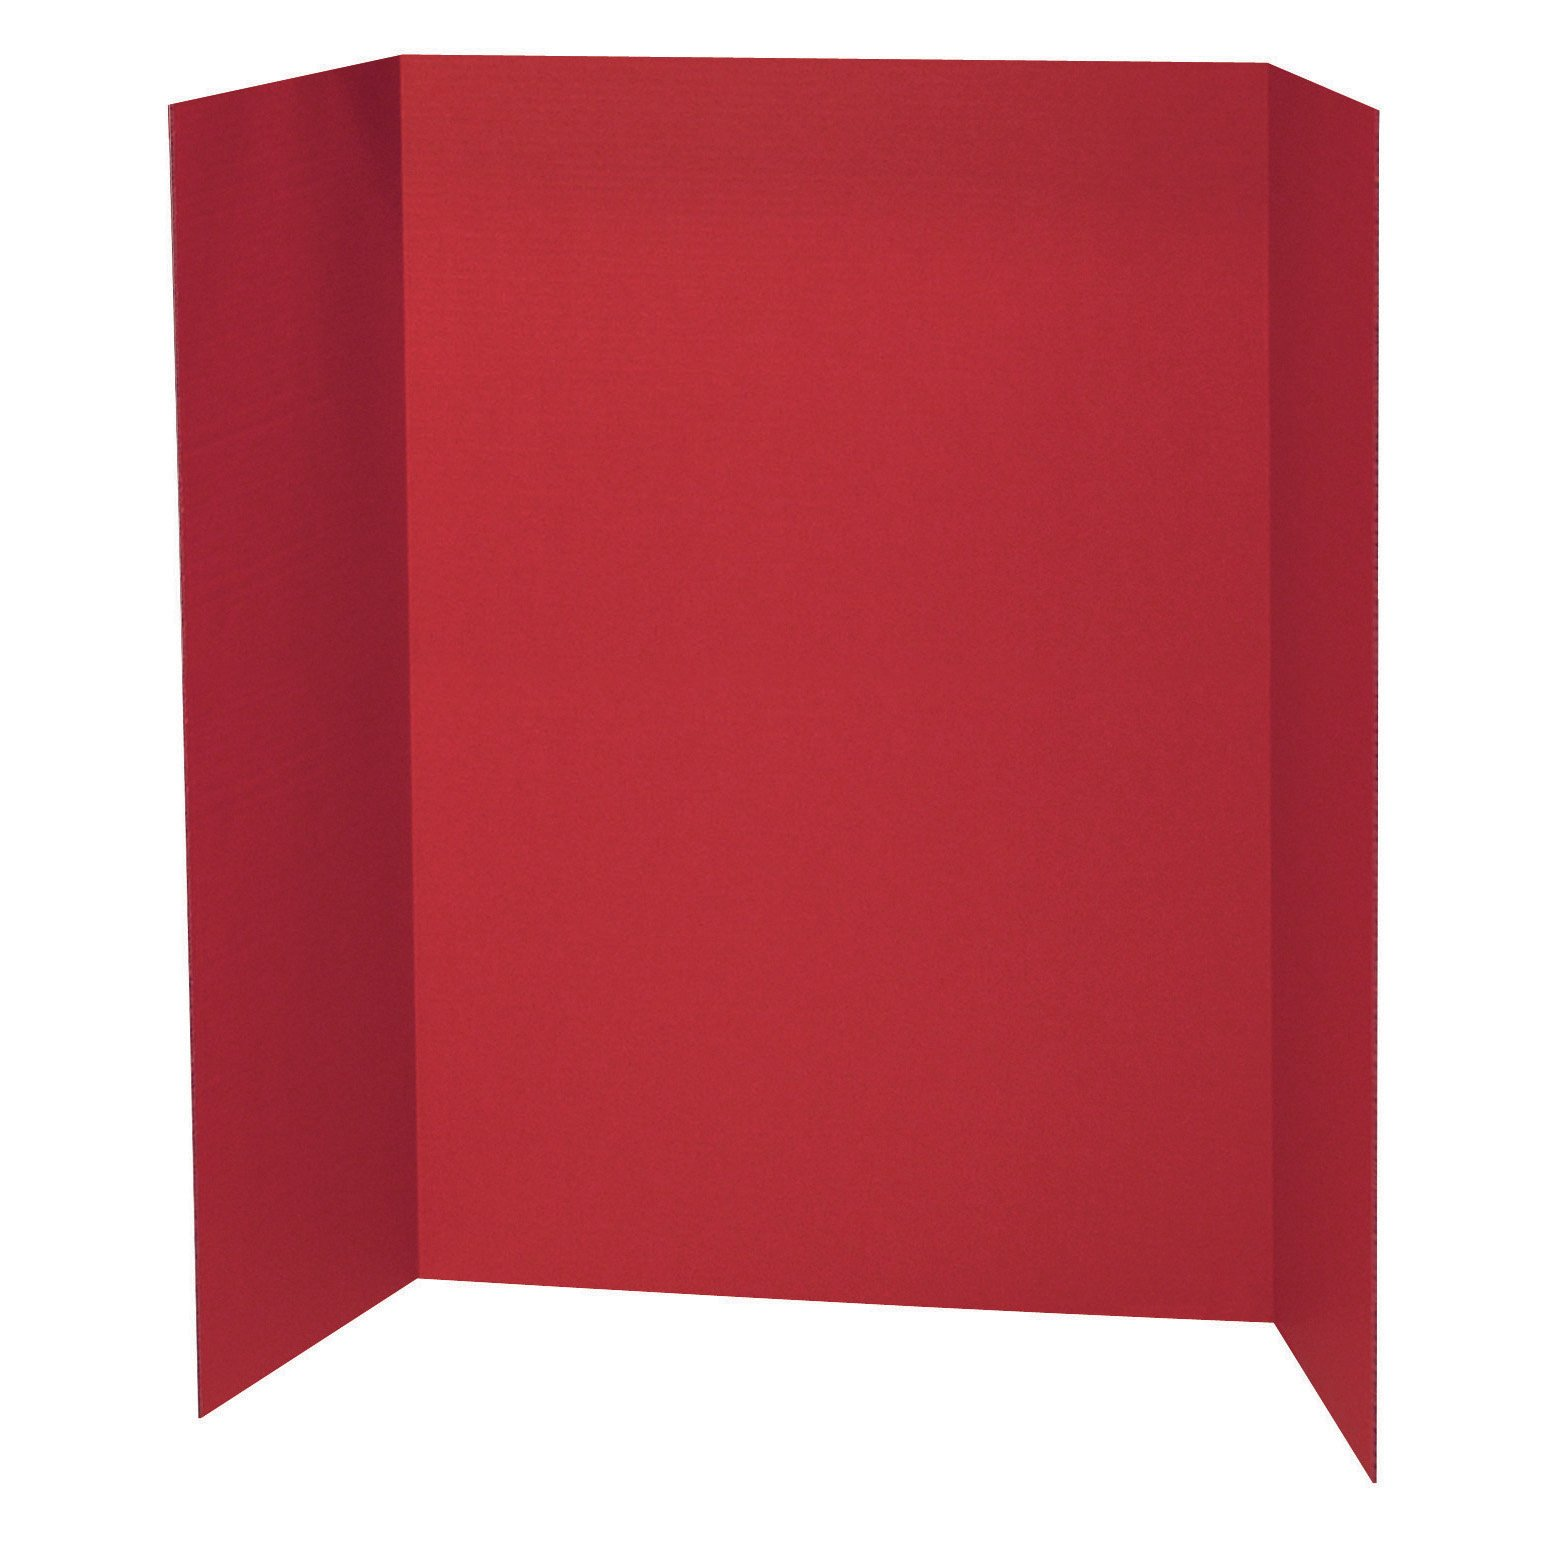 Pacon PAC3770 Presentation Board, 48'' x 36'', Red